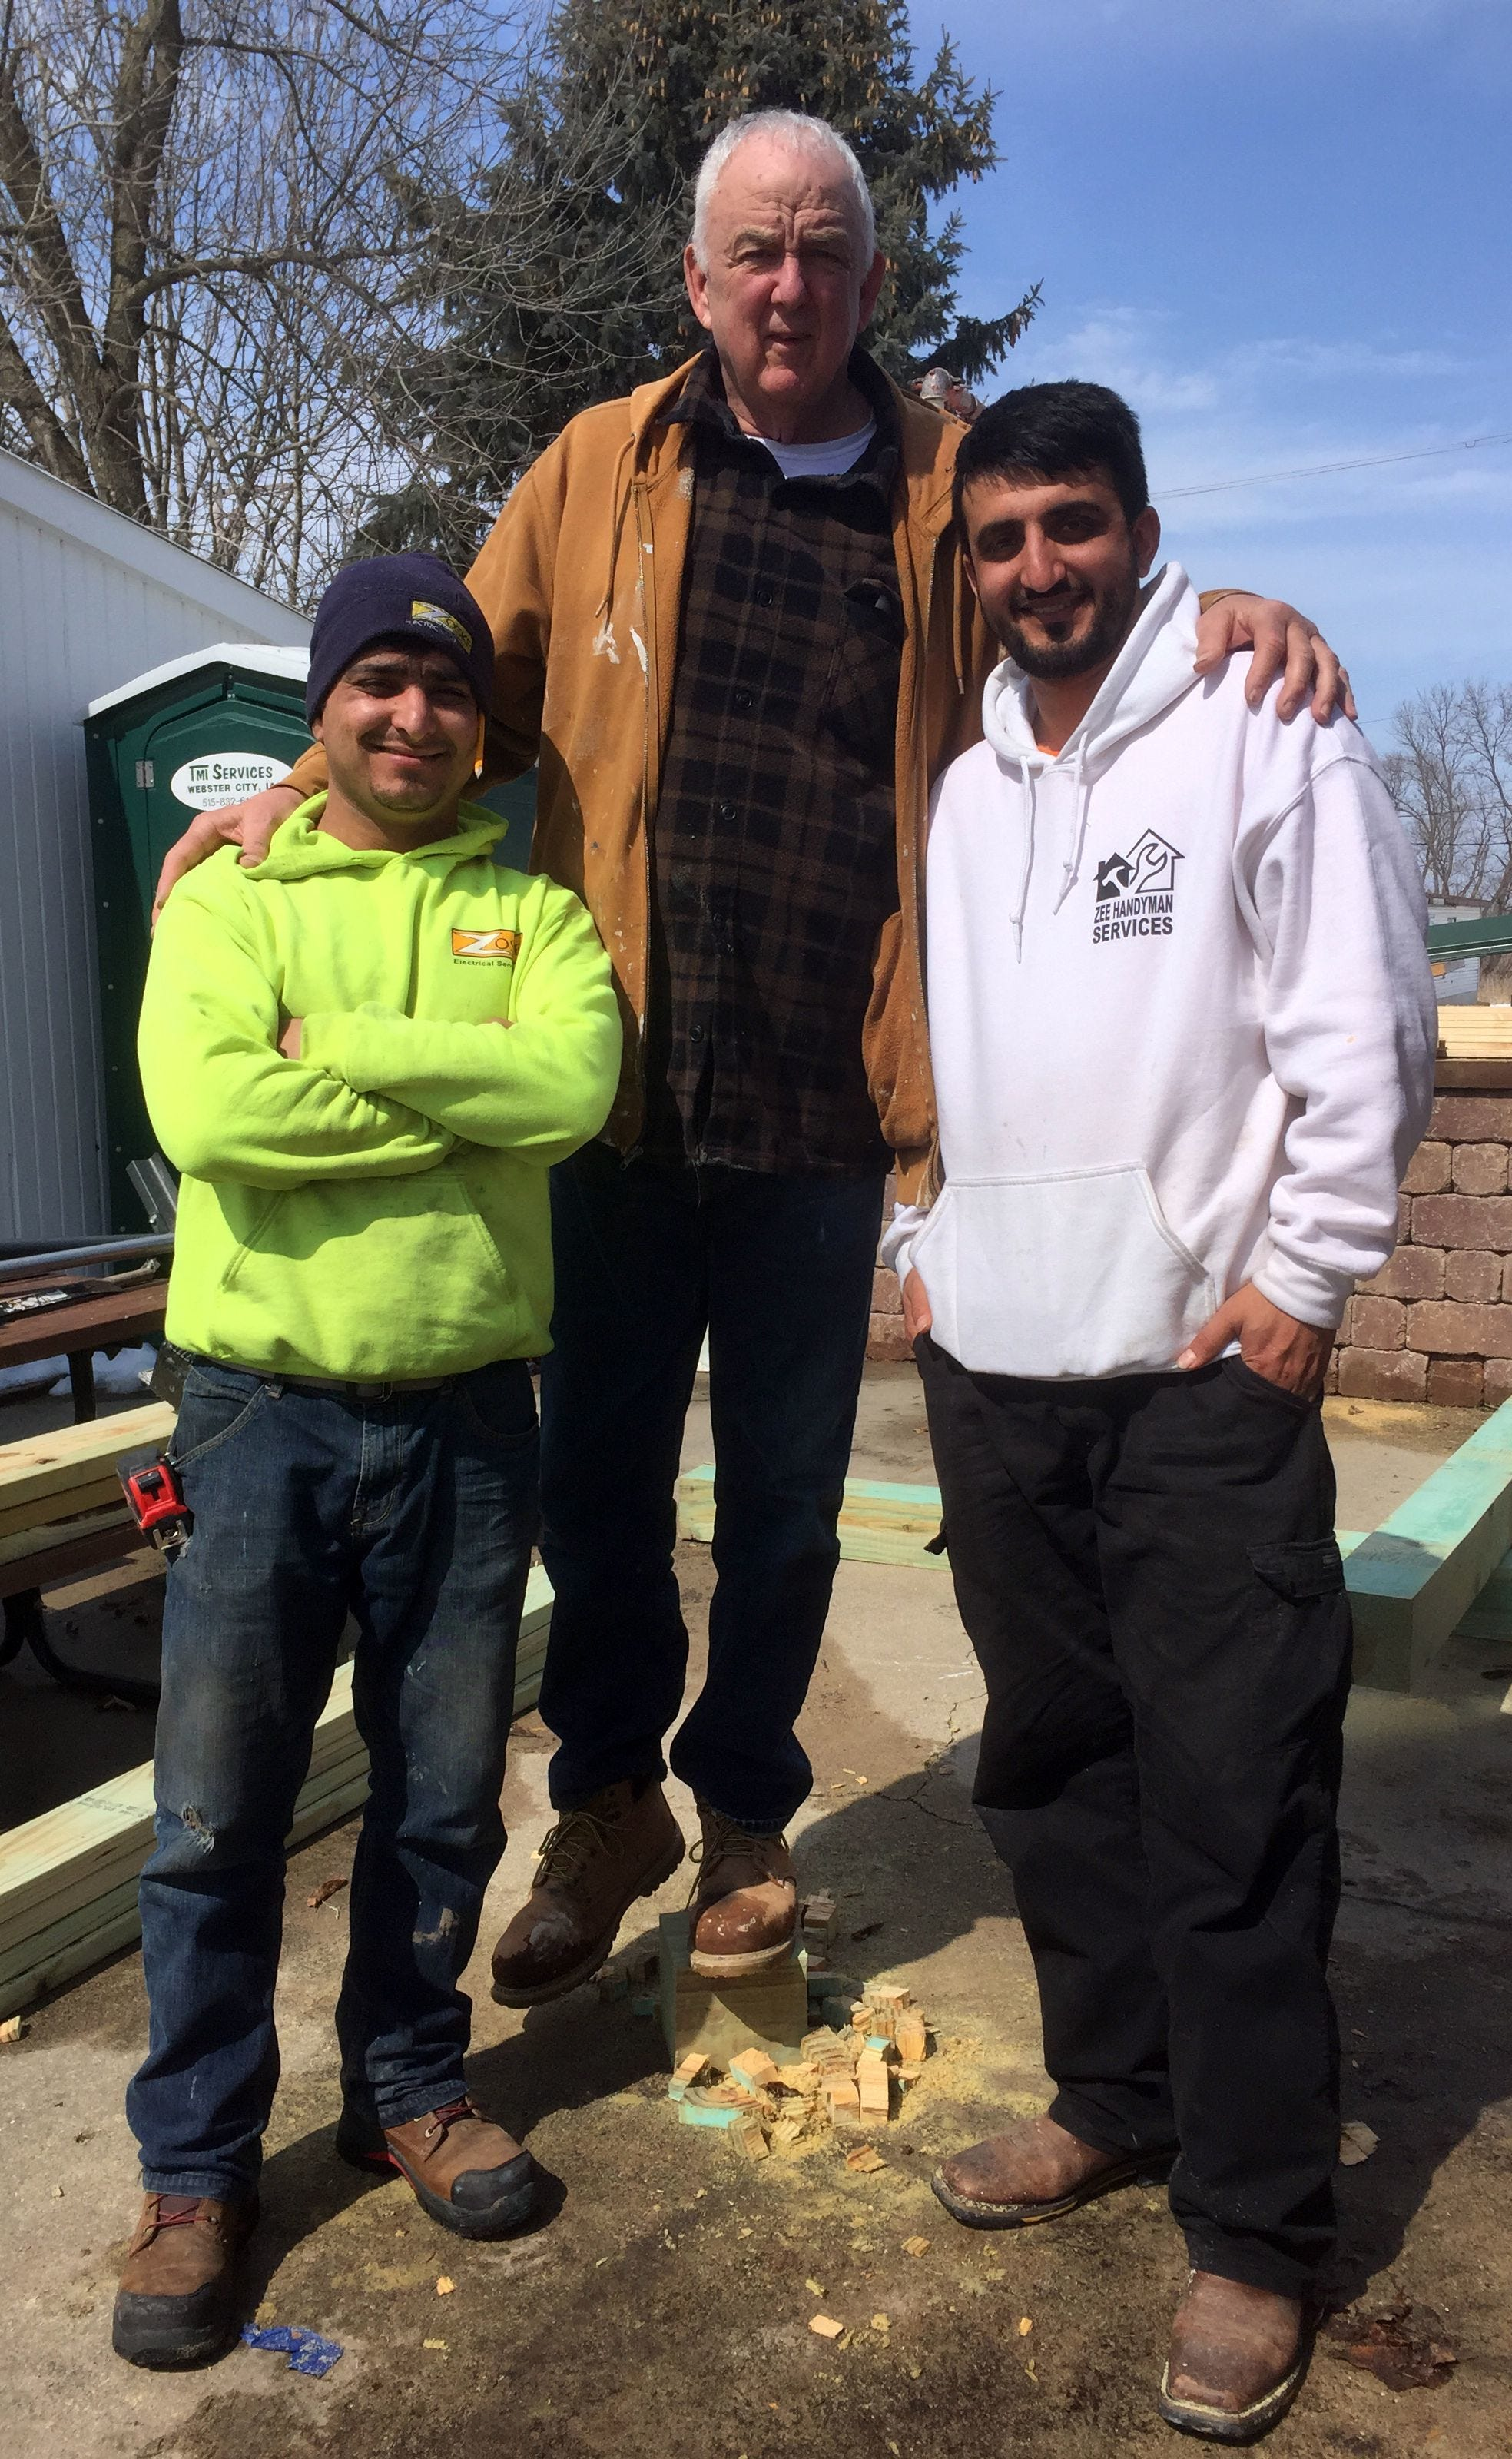 Cousins Farid Ahmad, left, and Zalmay Niazy, right, are shown above with their friend Mike Ingebritson.